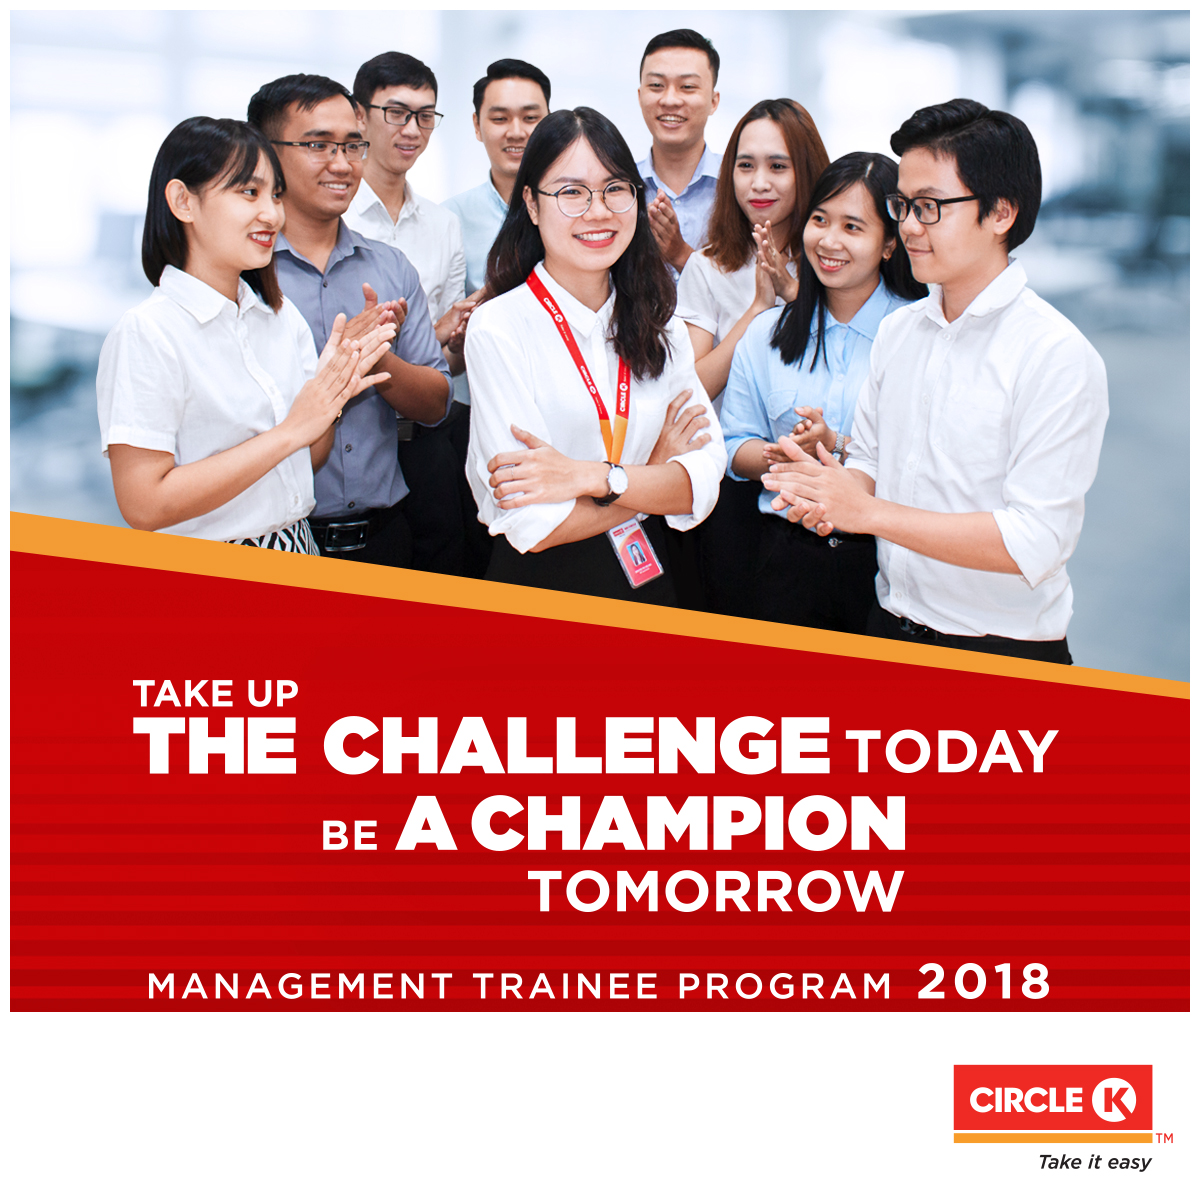 CIRCLE K MANAGEMENT TRAINEE PROGRAM - 2018